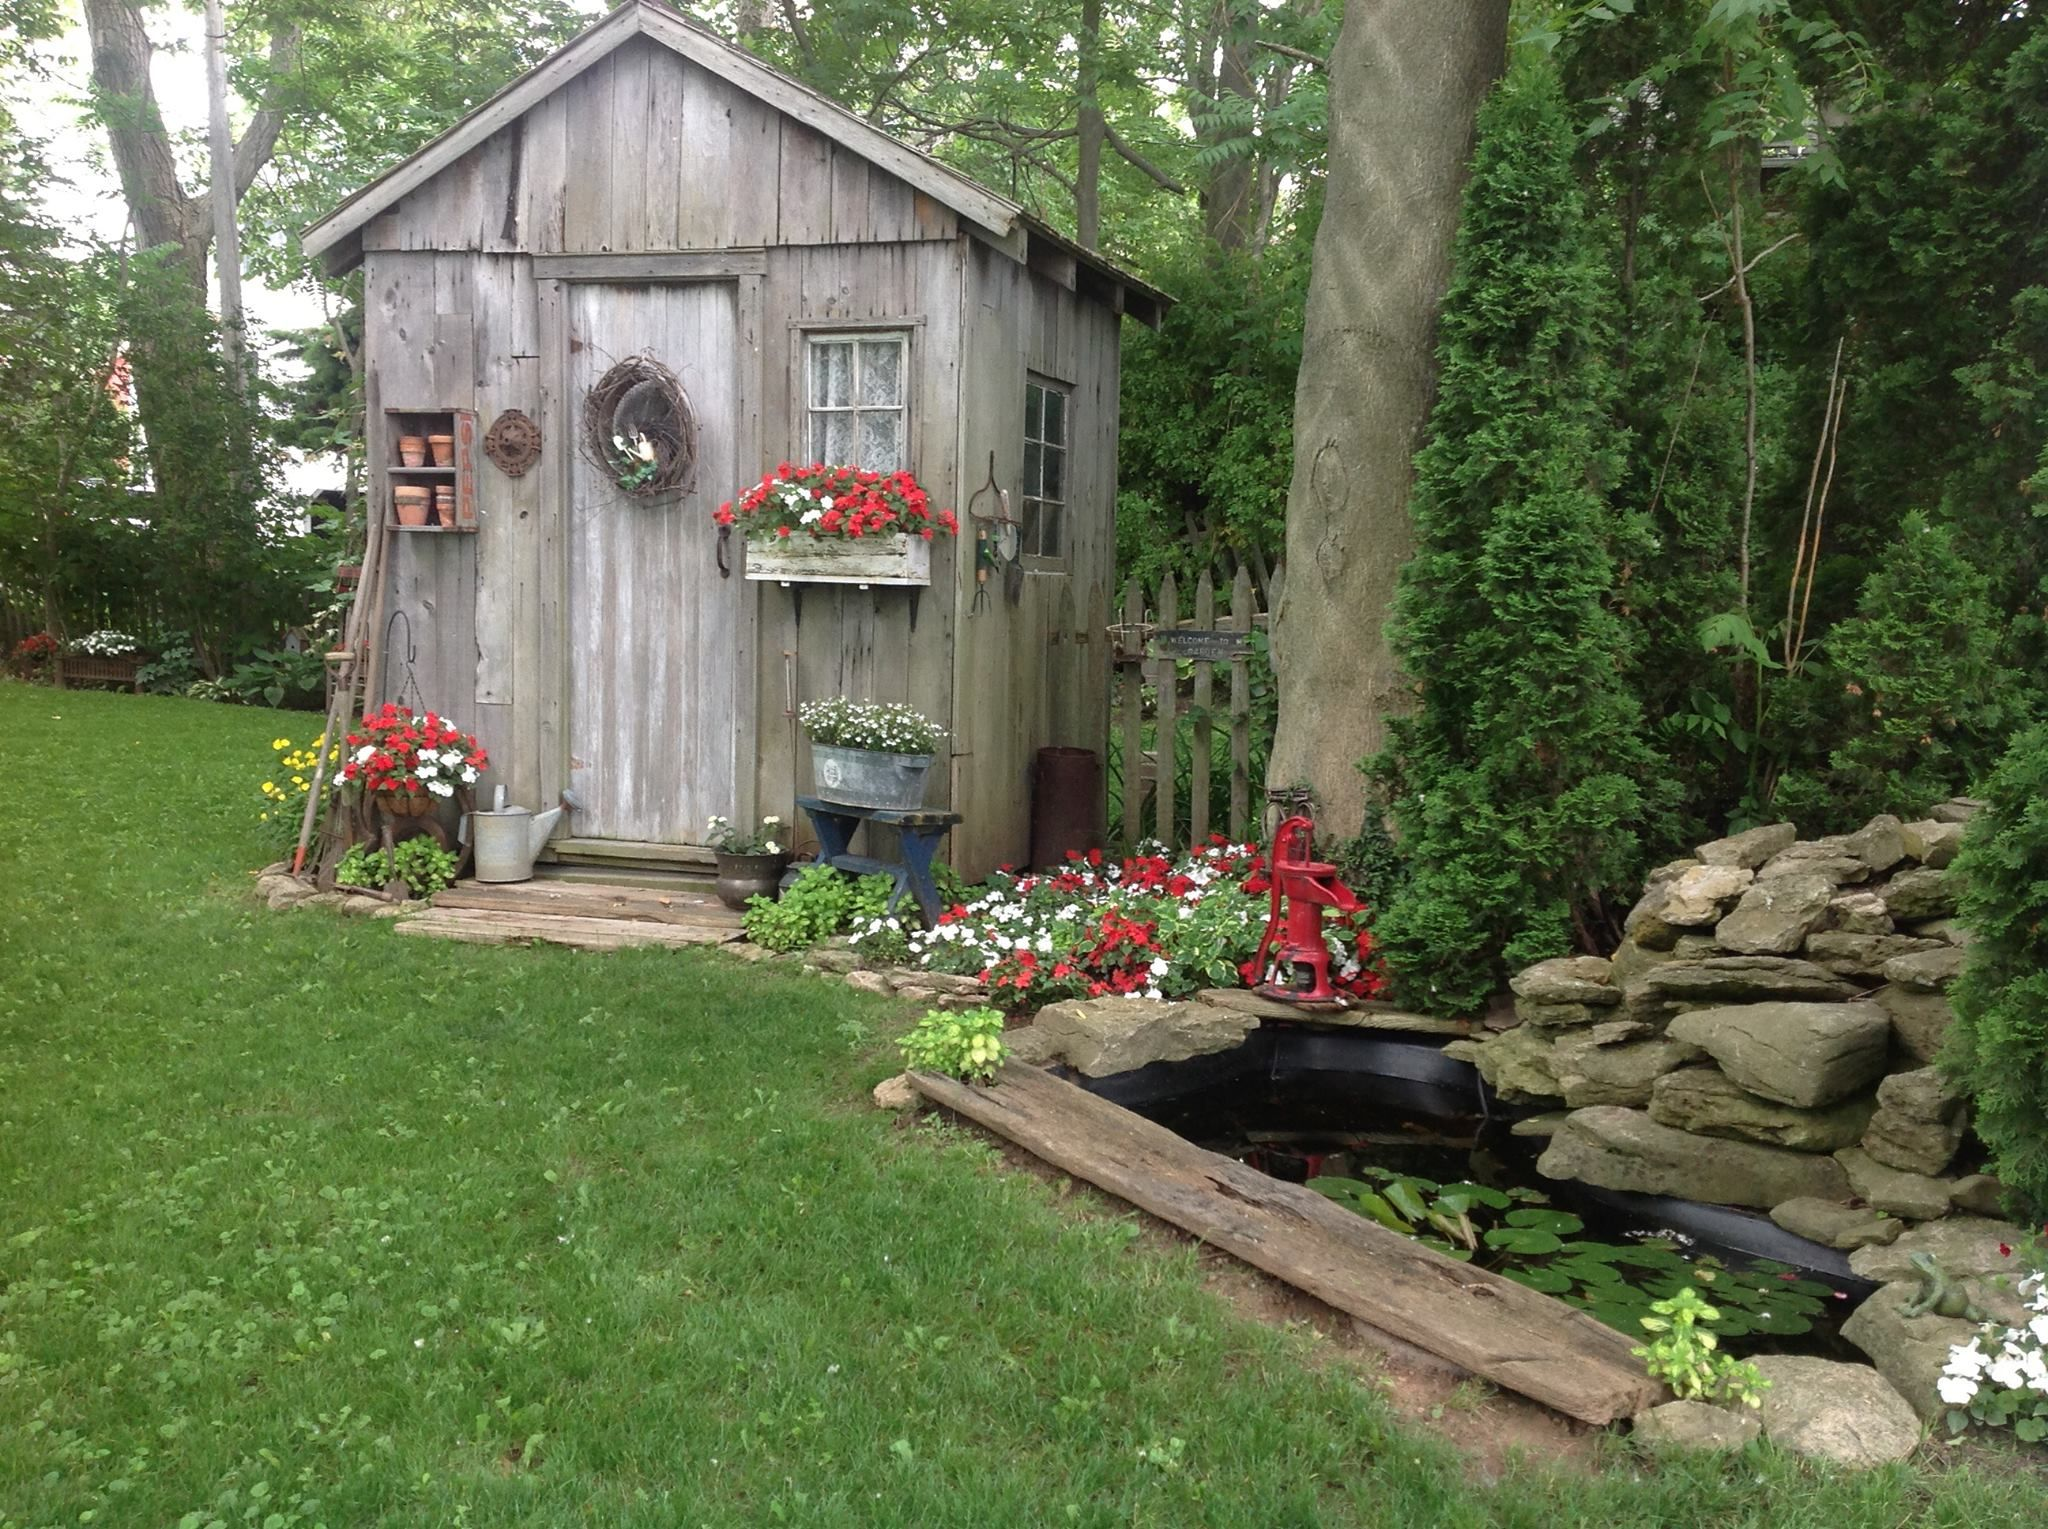 Garden Sheds Ohio 437 best sheds for yard & garden images on pinterest | garden